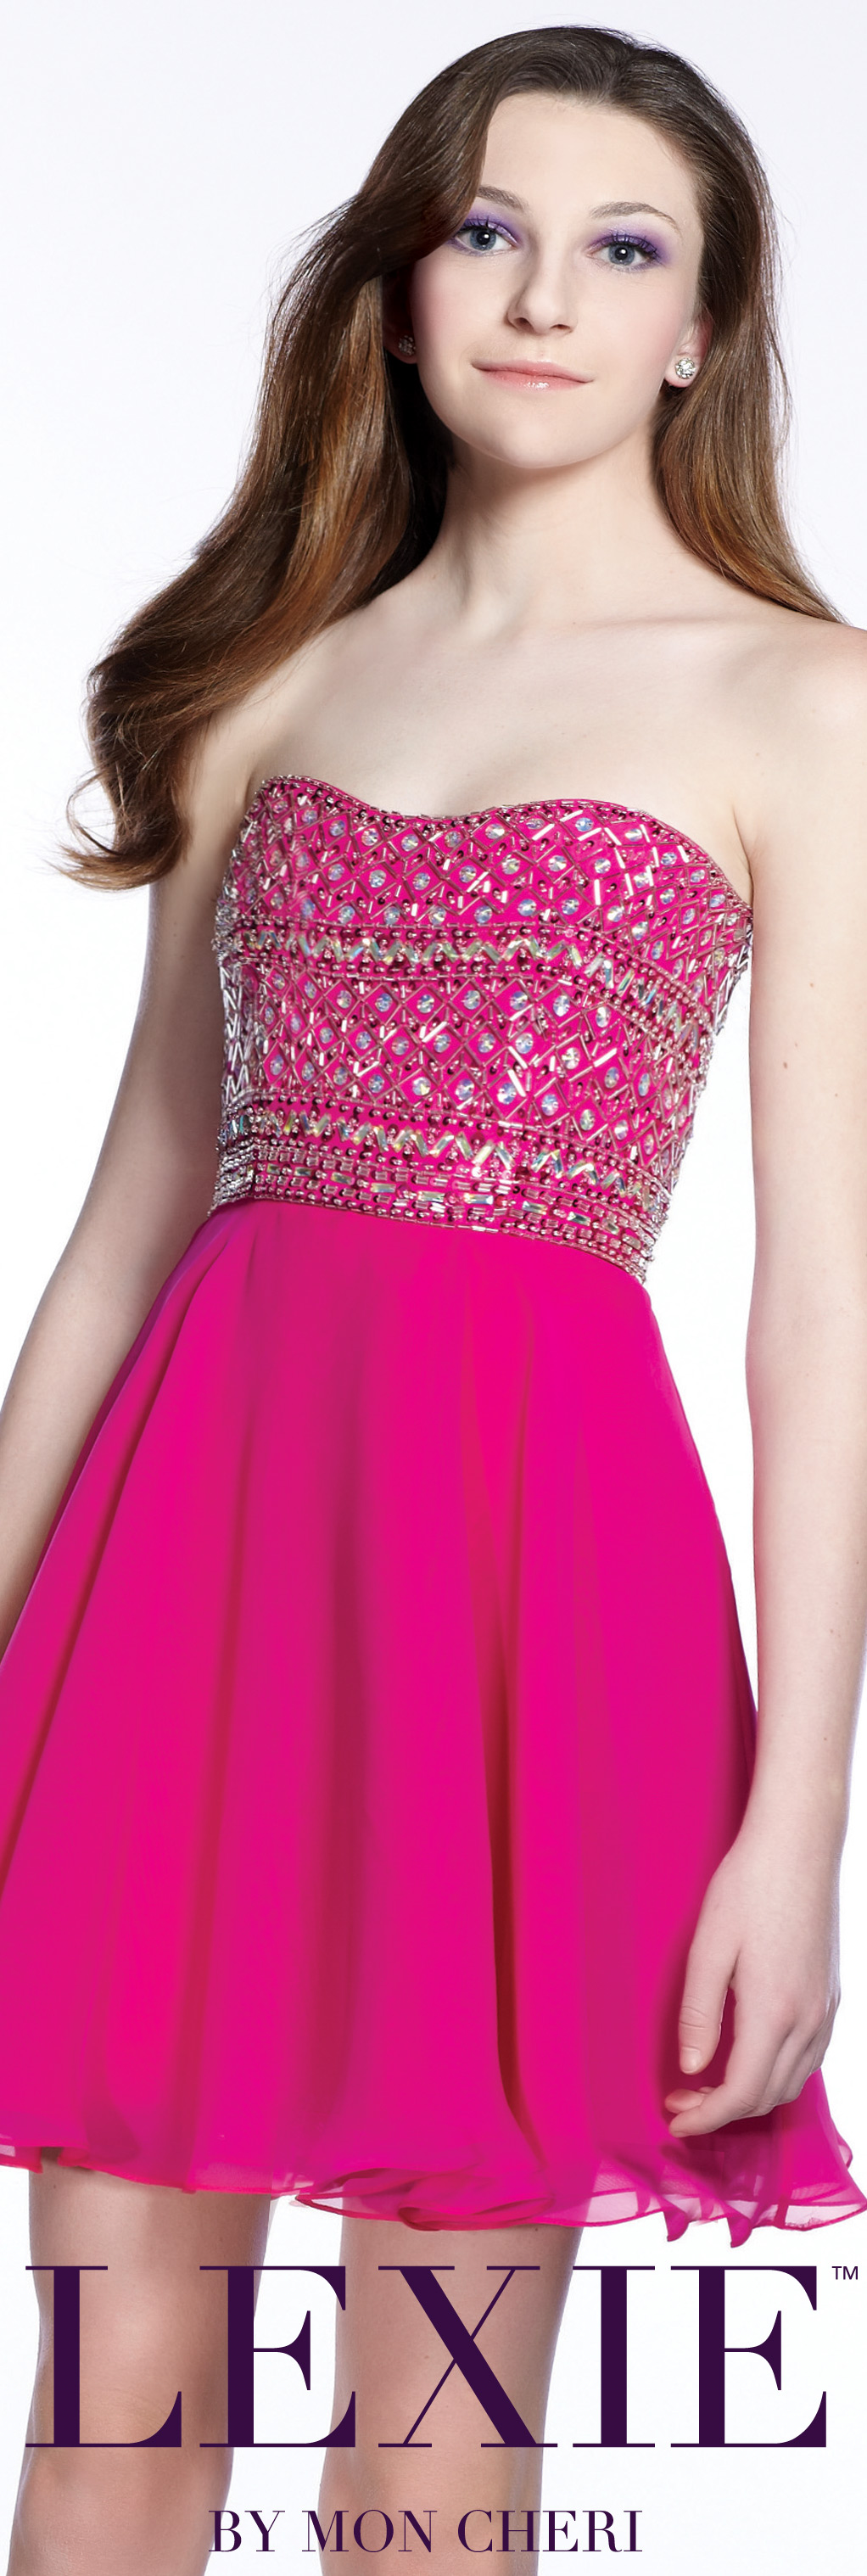 Lexie by Mon Cheri - Tween Formal Dress - Style No. TW21538 ...